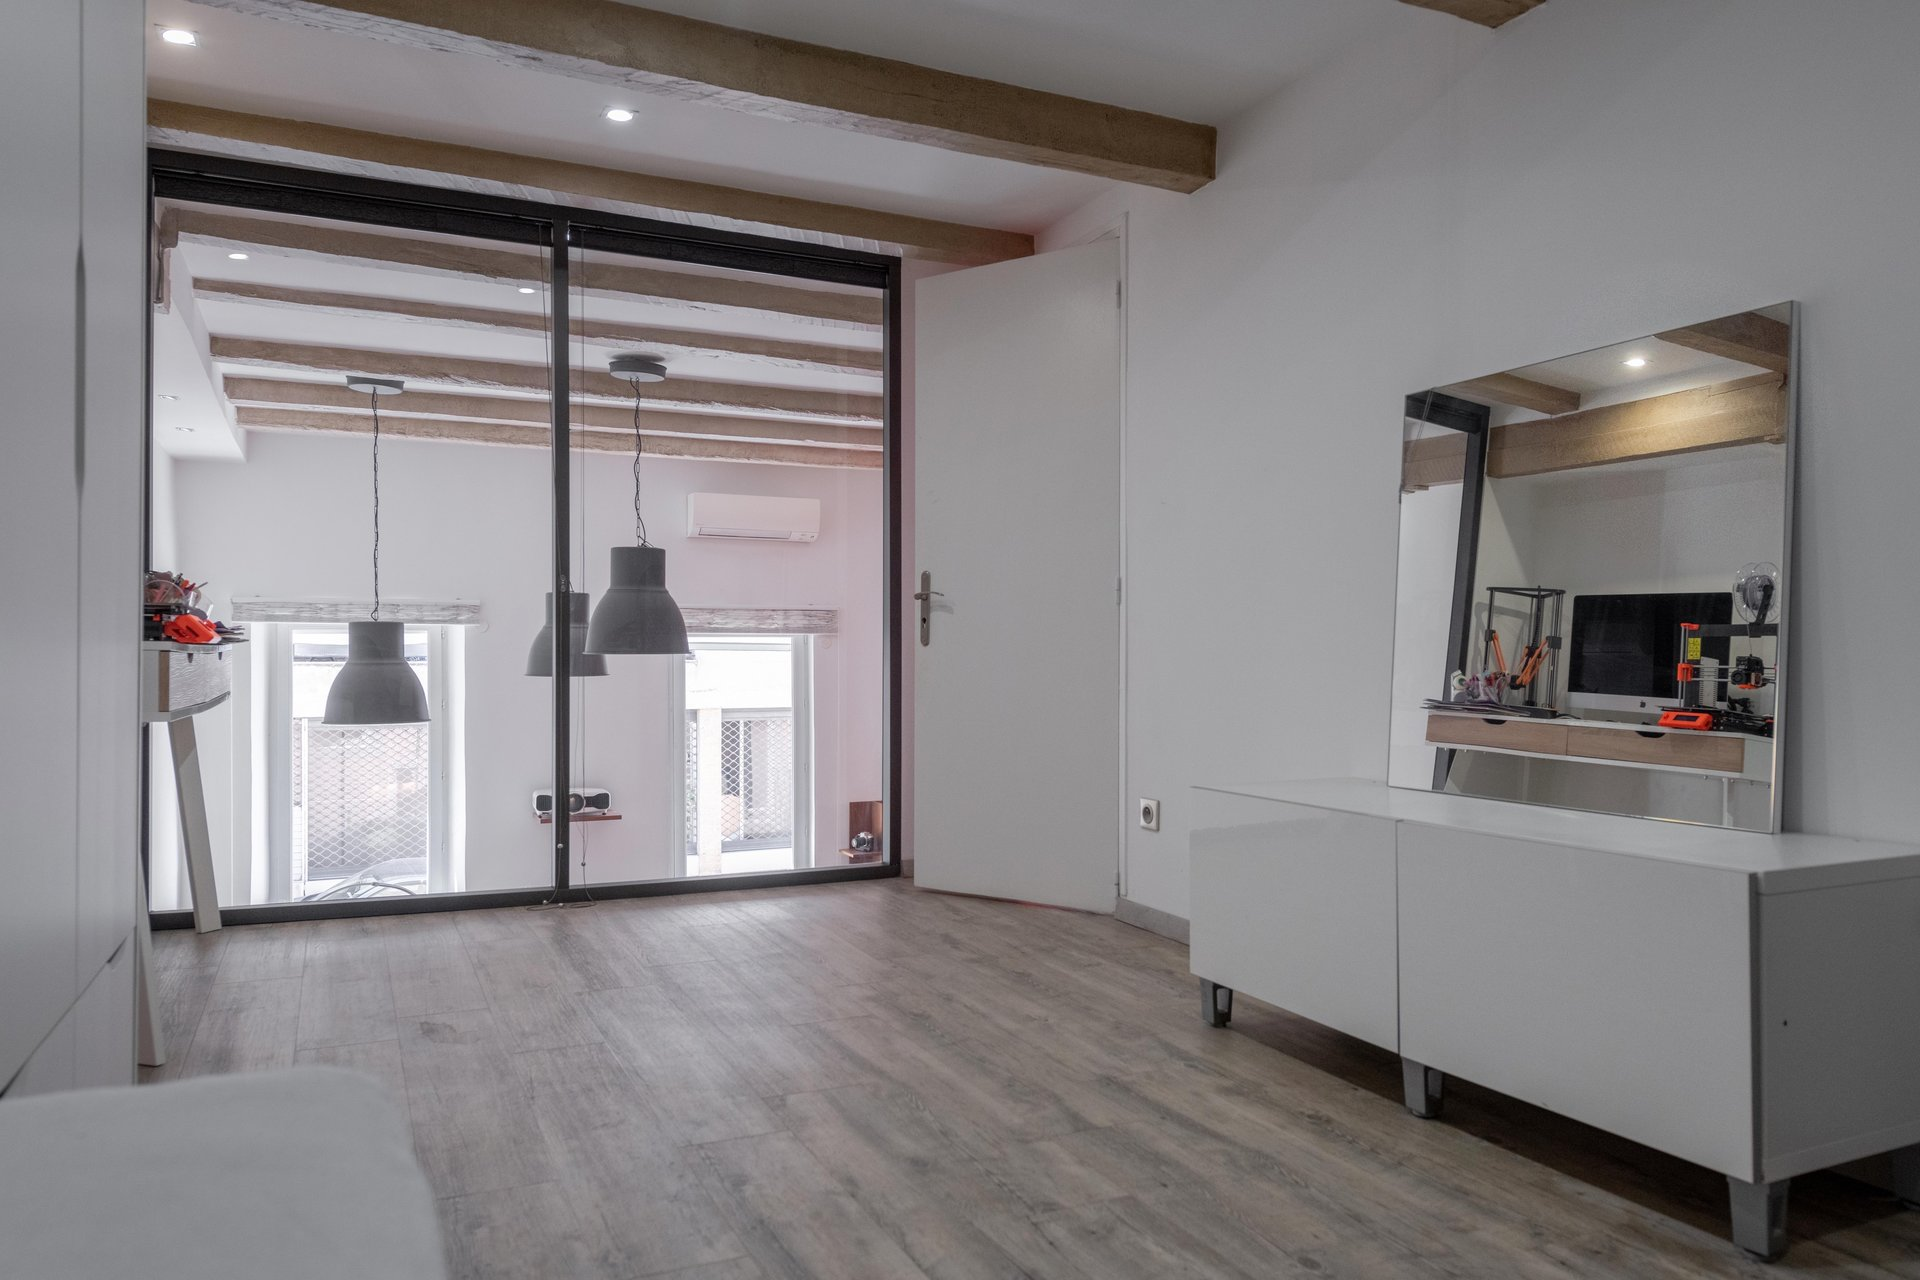 Vauban - Duplex d'exception calme absolu !!!